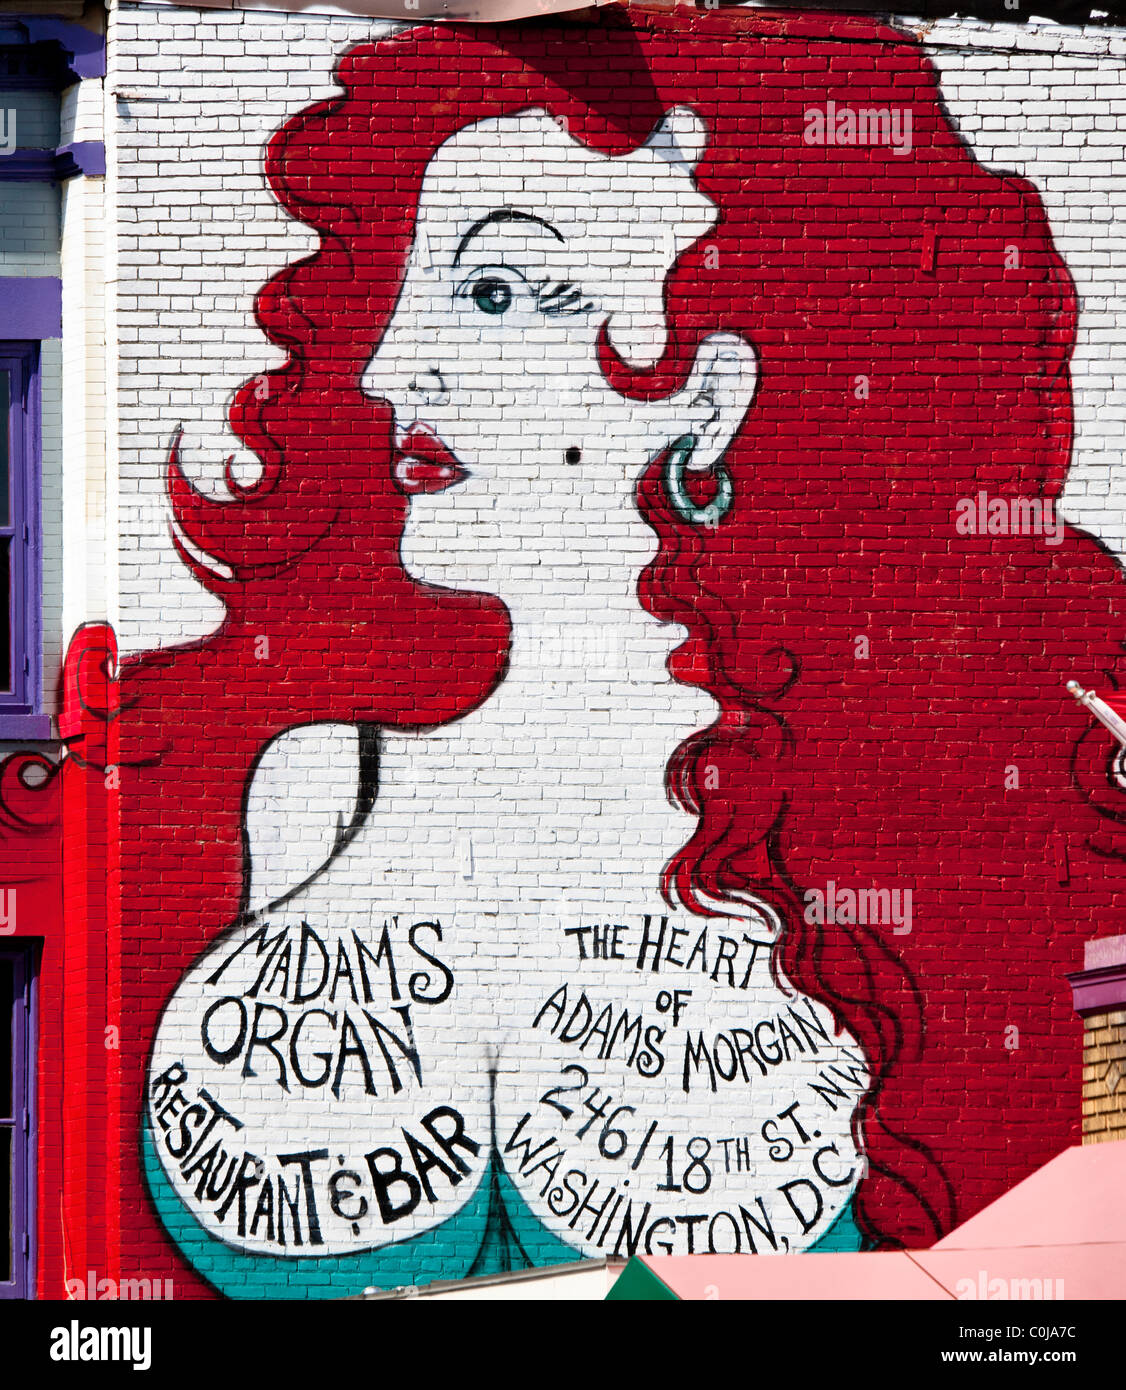 Landmark mural of a buxomly lady on the side of club Madam's Organ on 18th Street NW in Adams Morgan in Washington - Stock Image